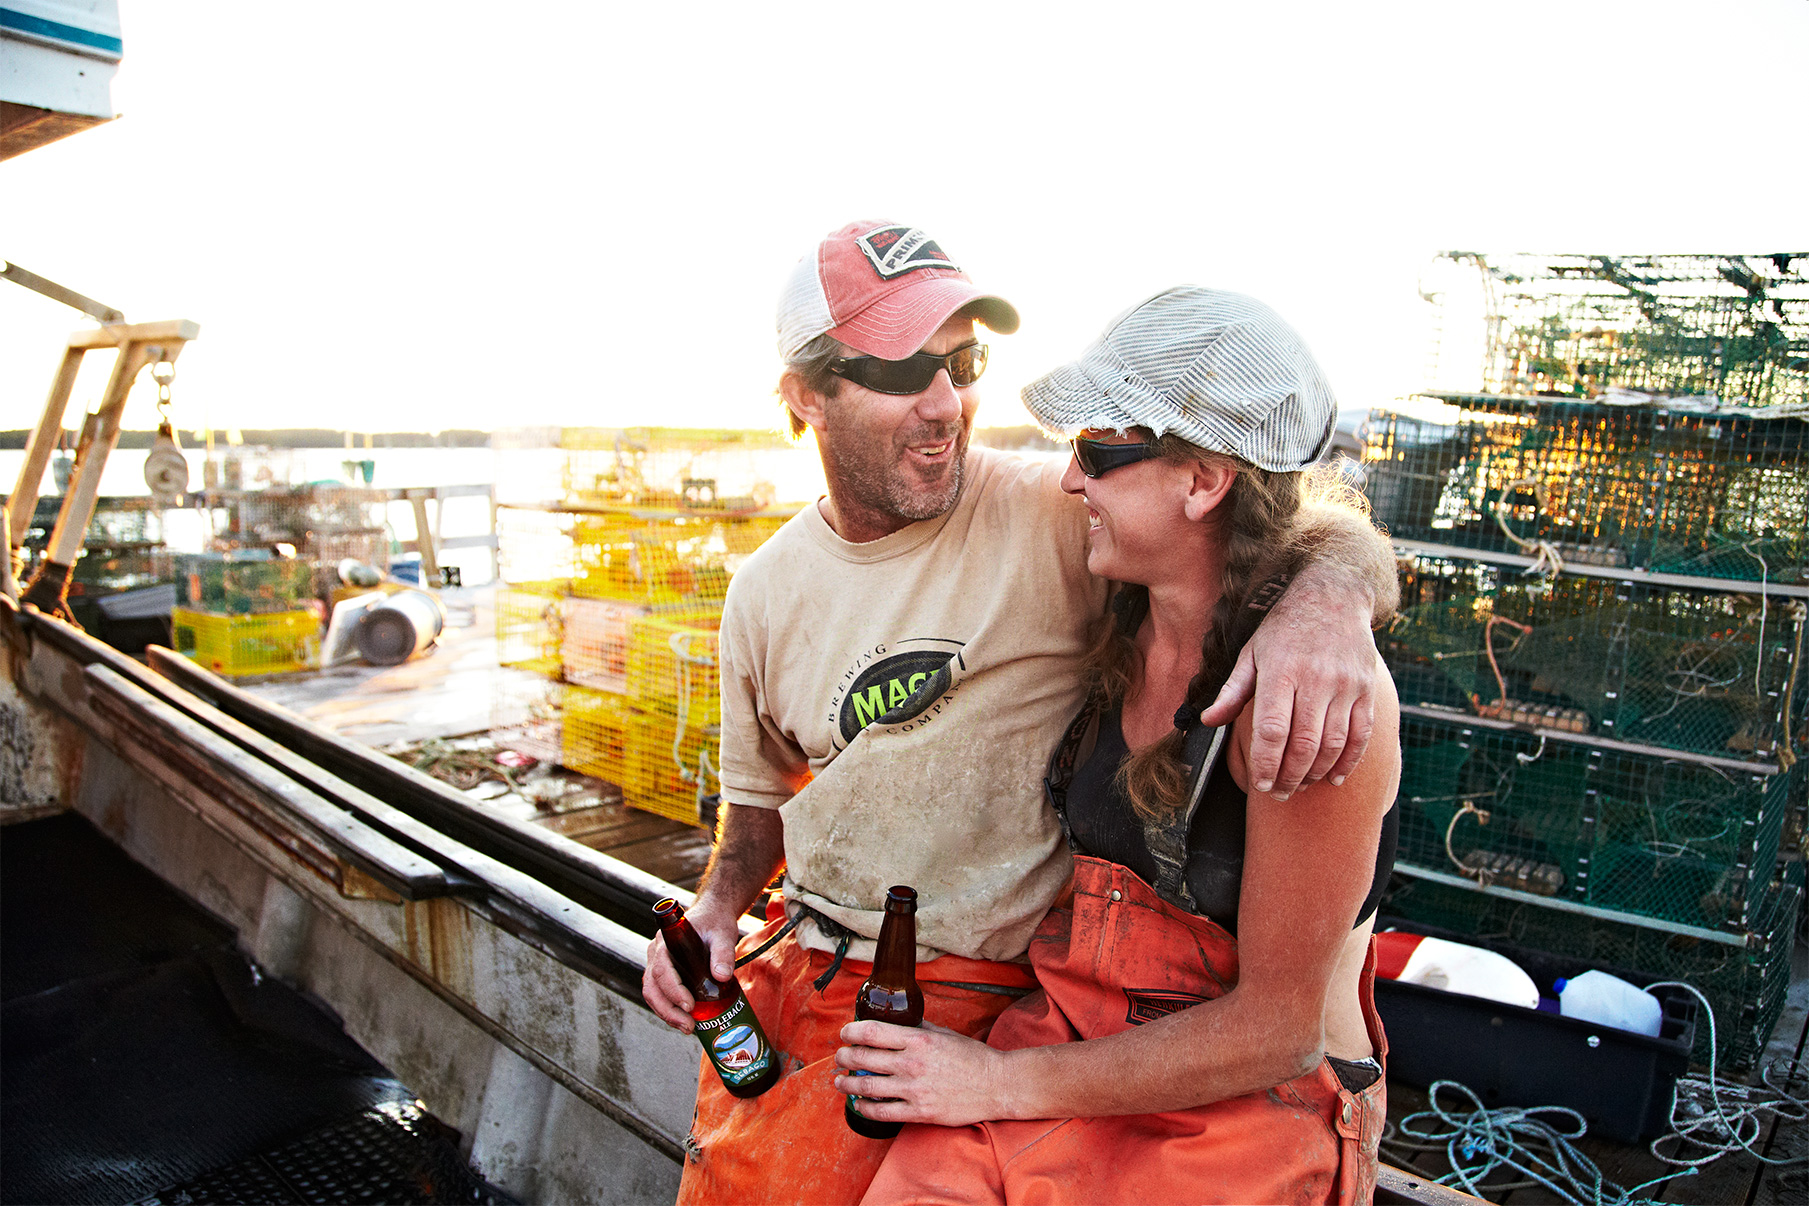 Lobstermen_Lobster_Maine_Beer